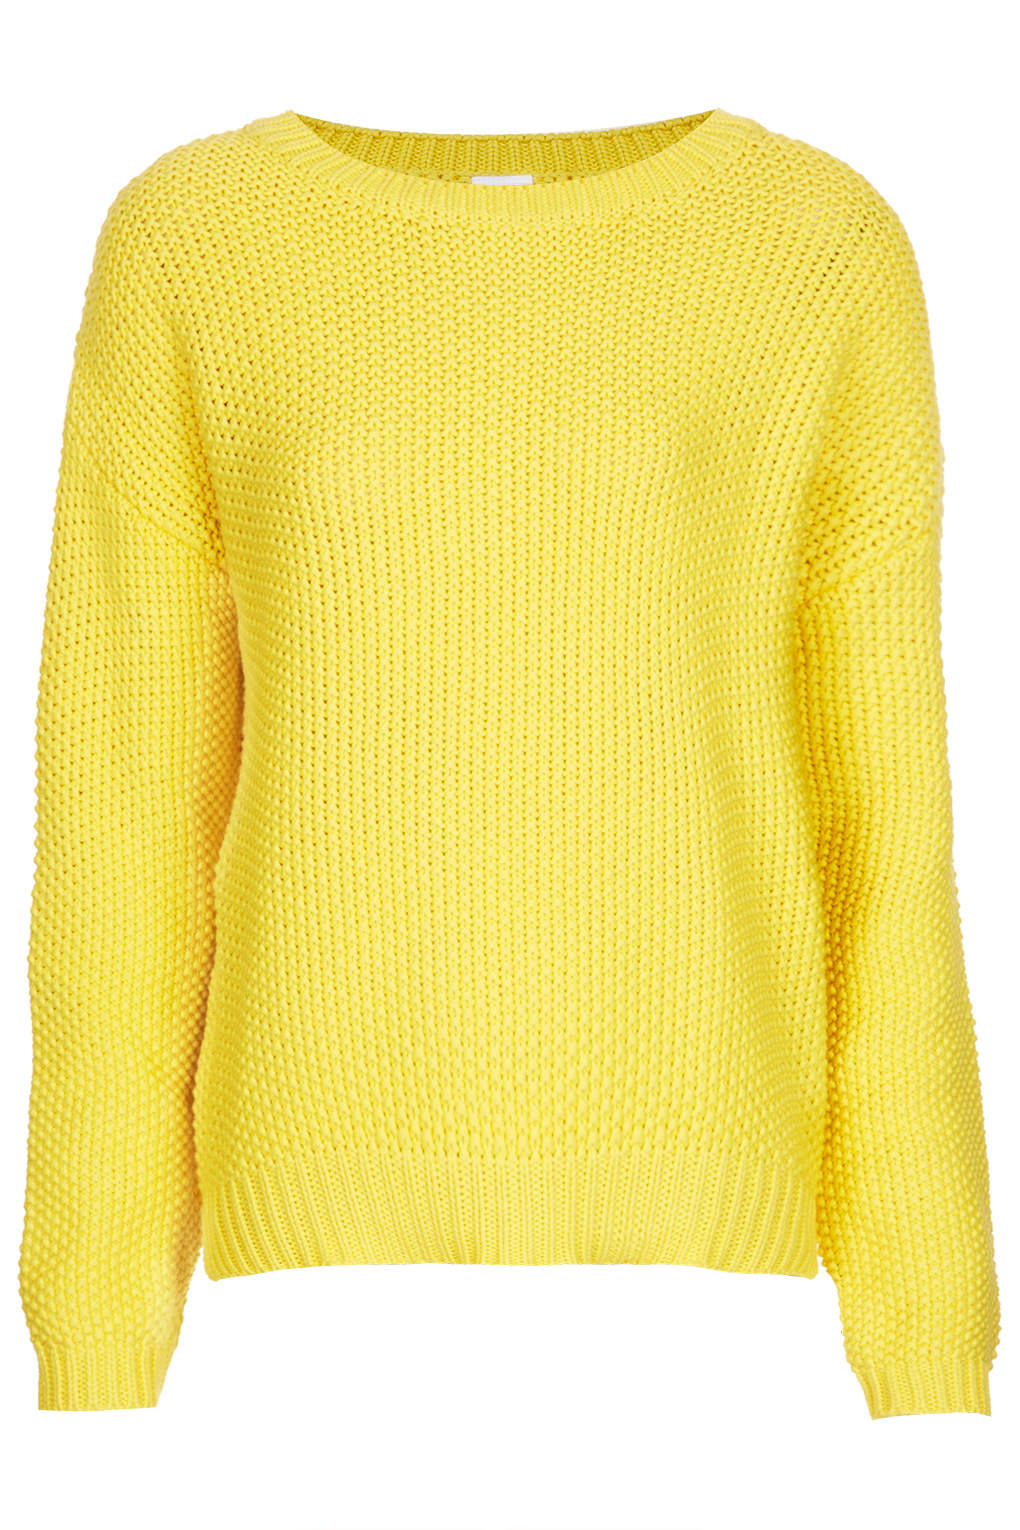 the yellow sweater Abercrombie & fitch women's sweaters are specially designed to have the prettiest details and the softest feel and texture.